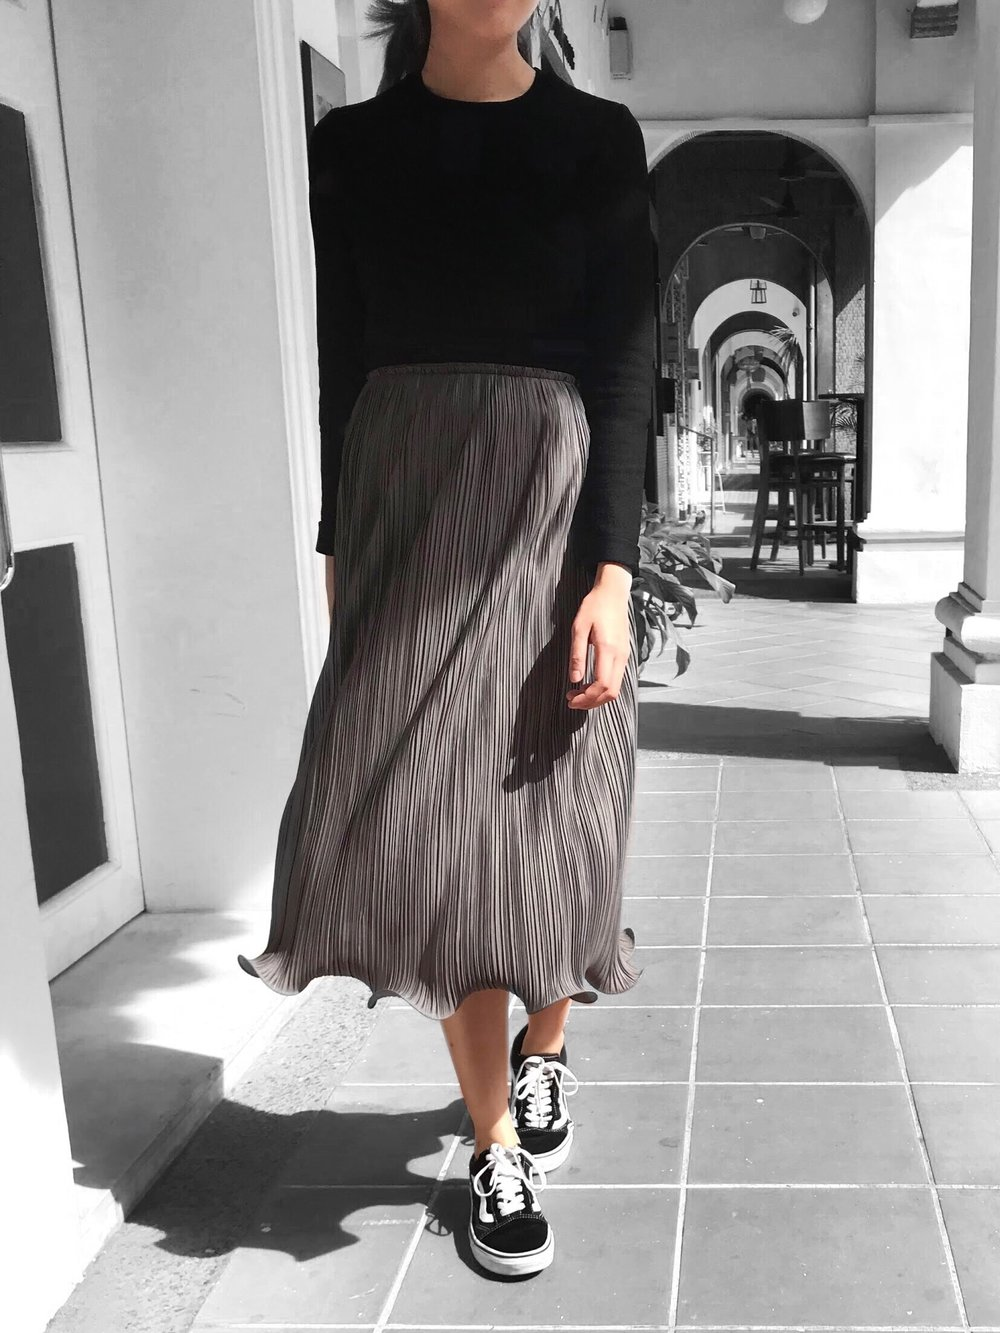 Curl Edge Skirt - Previously appearing as a knee length skirt, we've created Curl Edge in midi length to fulfill those midi dreams!